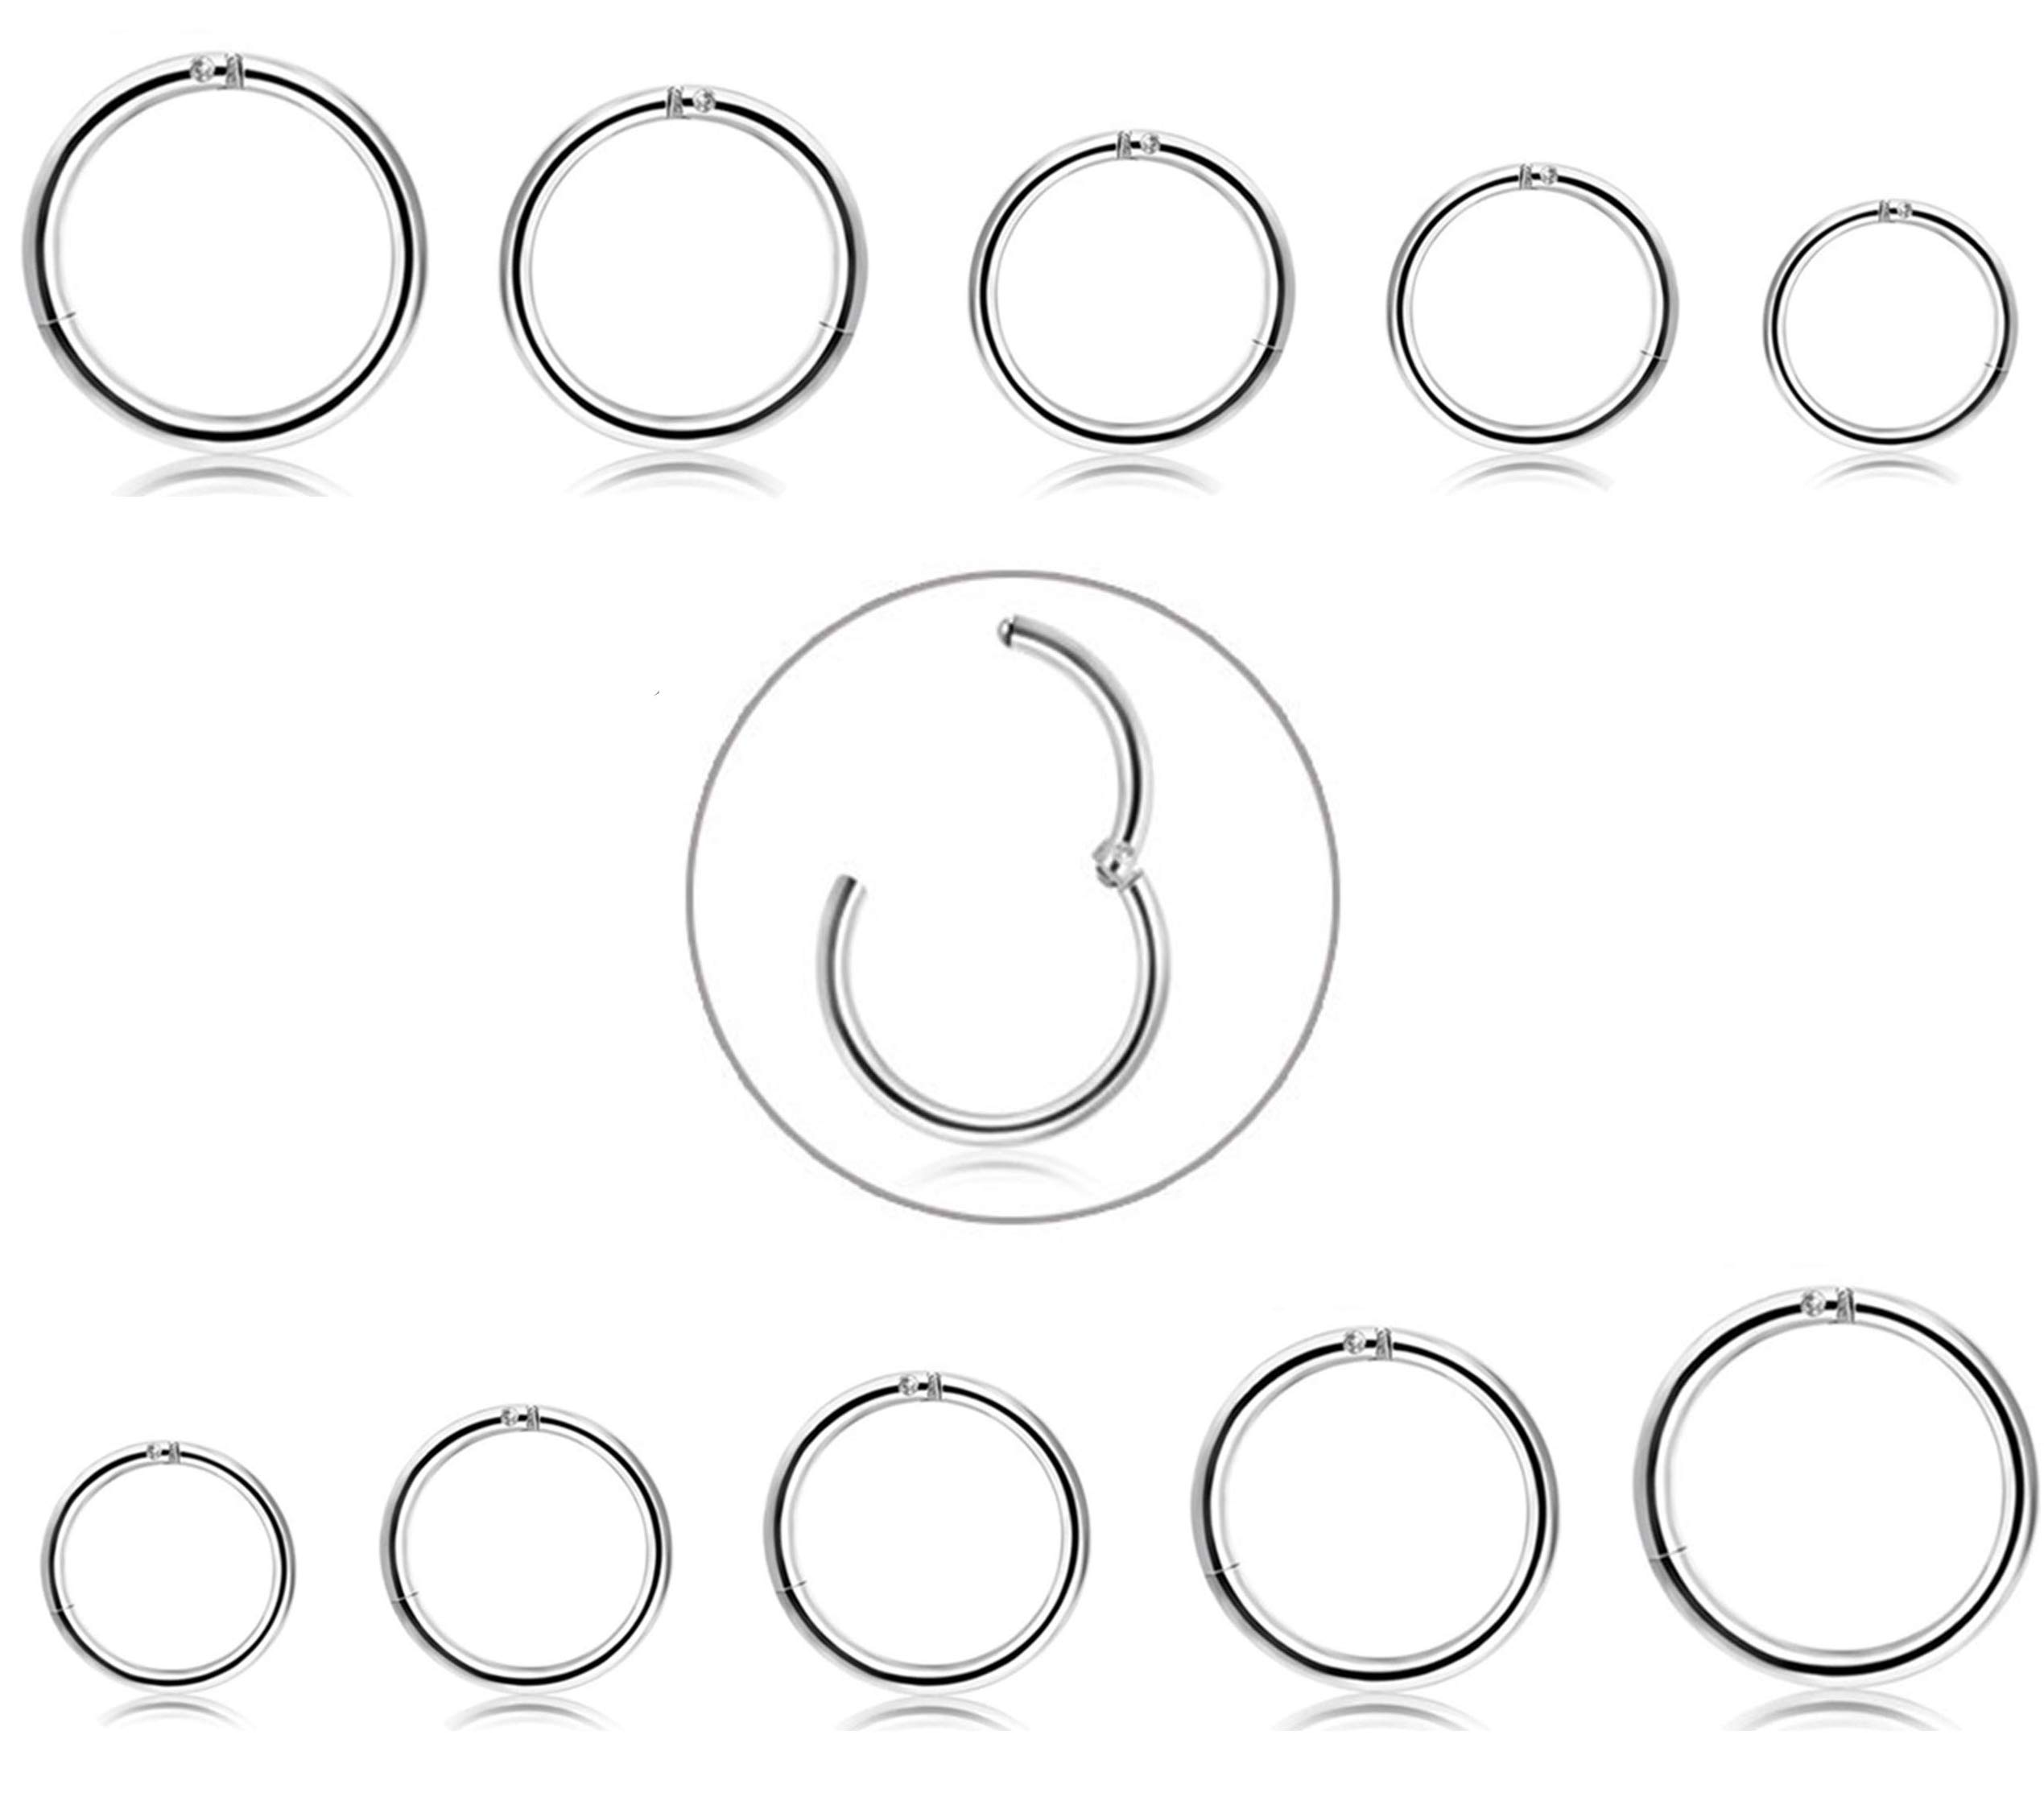 FIBO STEEL 10Pcs 6-14mm Stainless Steel 16g Cartilage Hoop Earrings for Men Women Nose Ring Helix Septum Couch Daith Lip Tragus Piercing Jewelry Set Silver-Tone